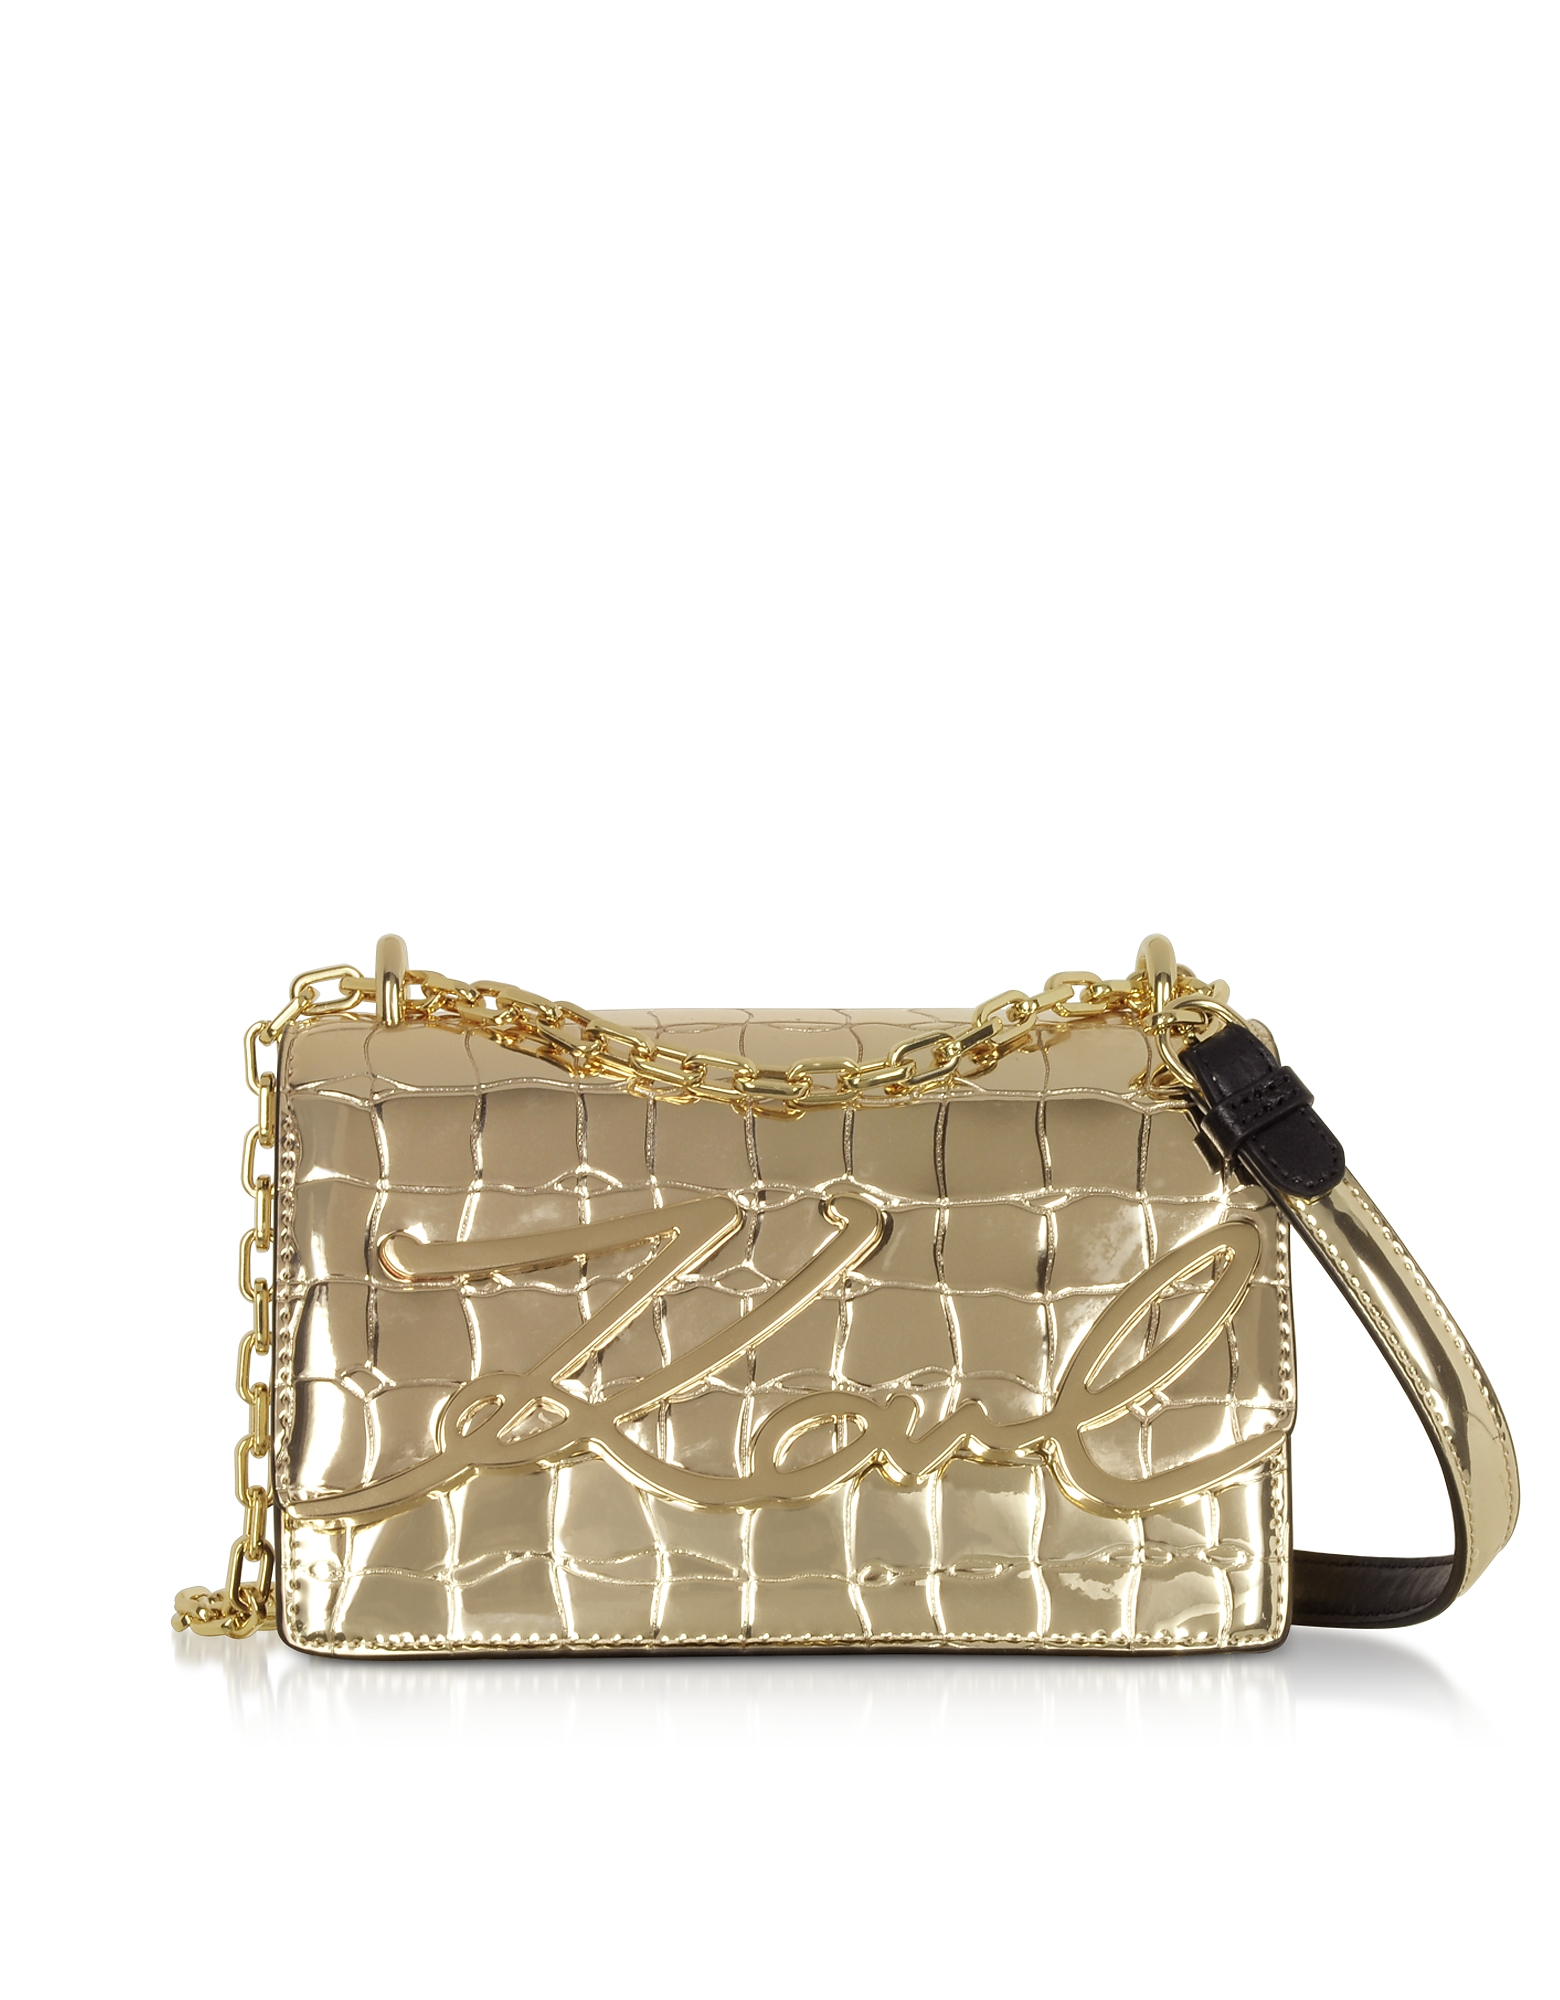 Karl Lagerfeld  Handbags K/Signature Small Croco Leather Shoulder Bag